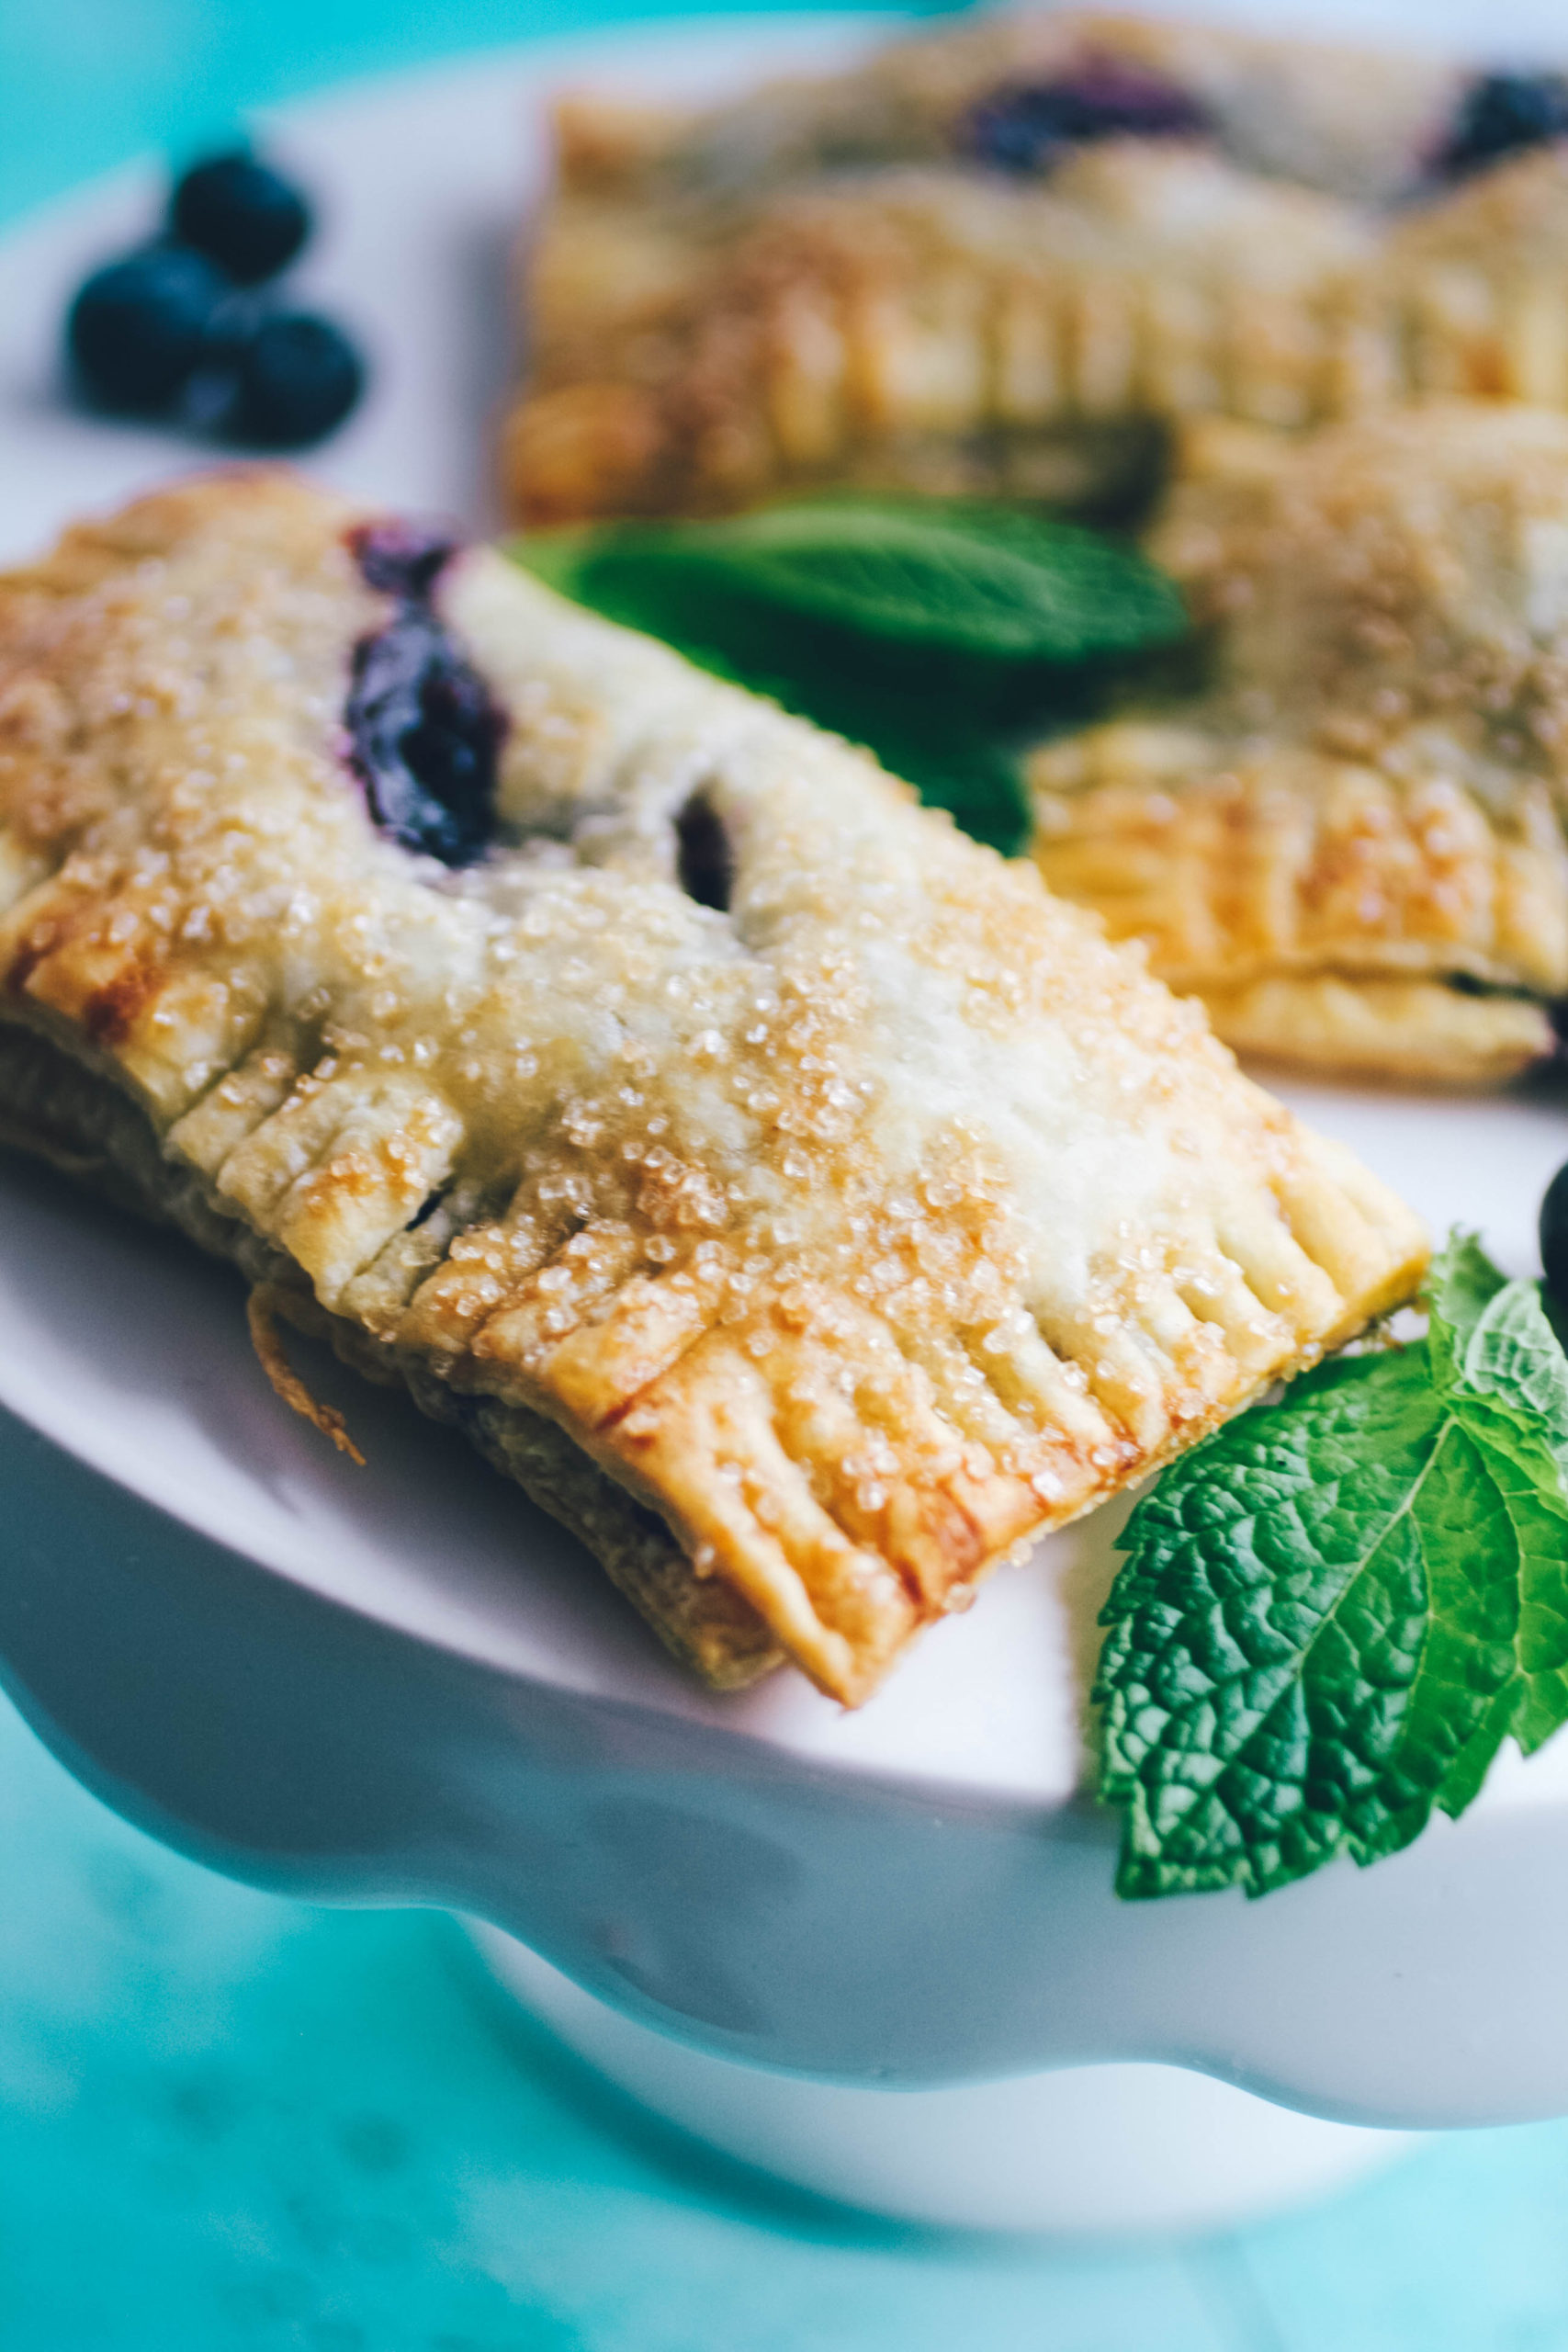 A plateful of Blueberry Mint Hand Pies is an ideal way to end any meal!